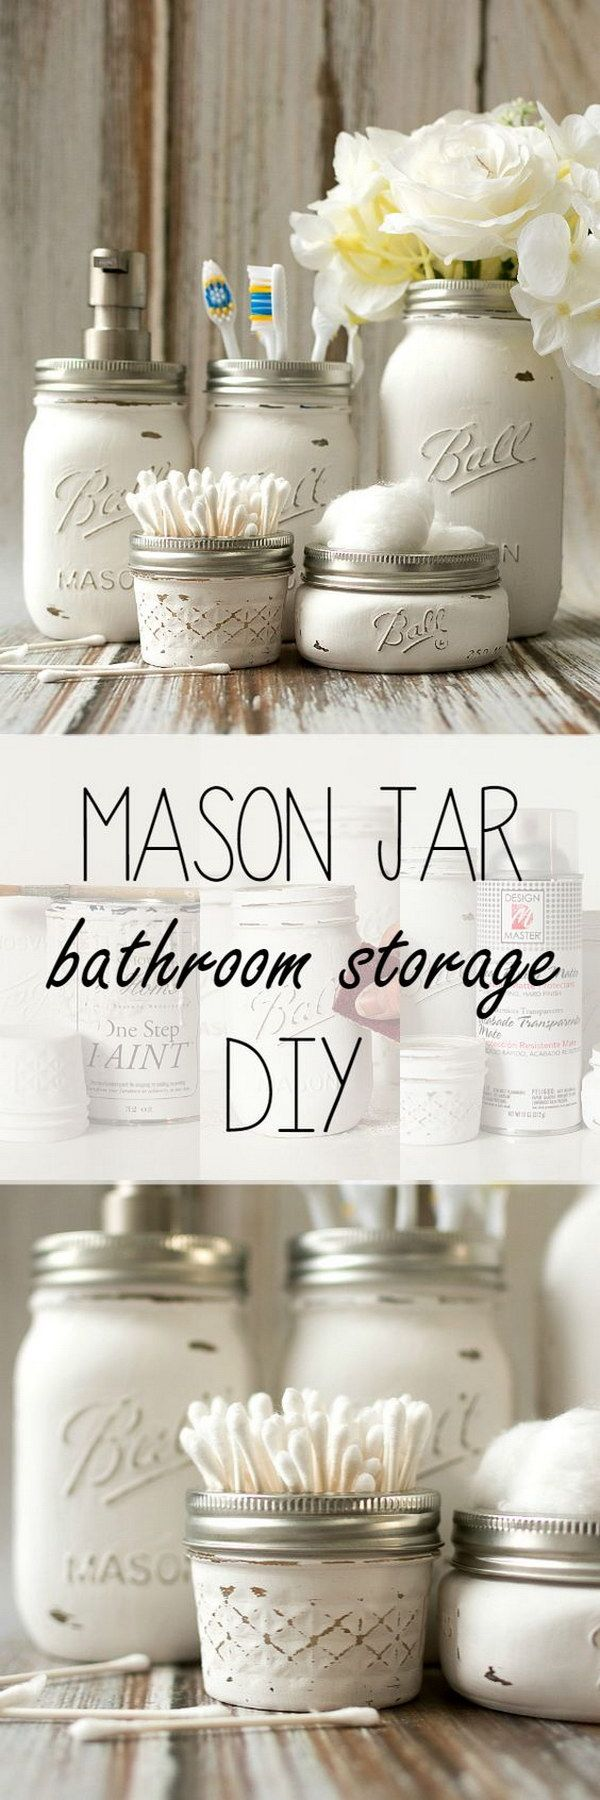 Mason Jar Bathroom Storage & Accessories                                                                                                                                                                                 More